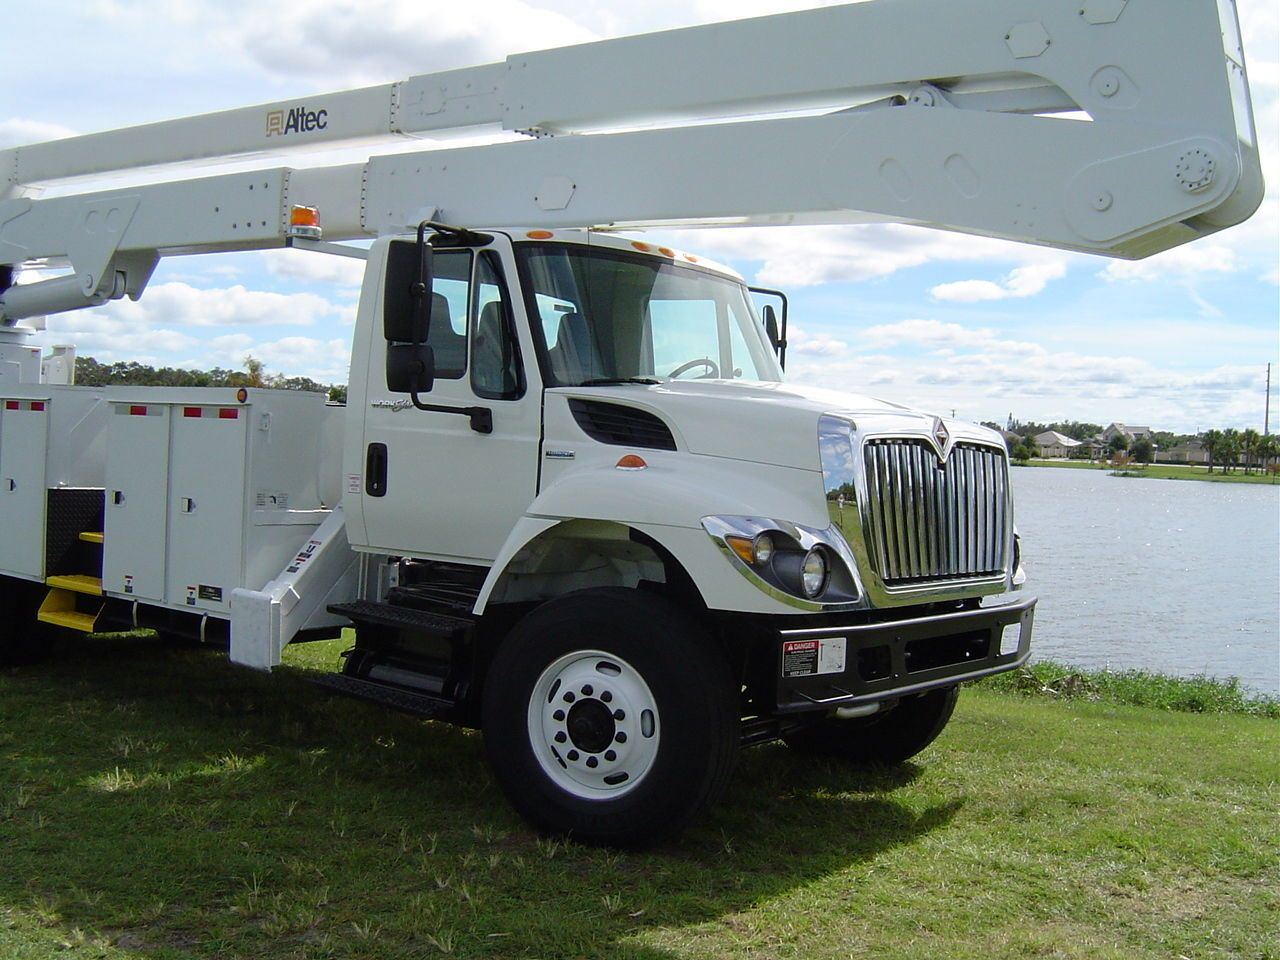 Pin By Ford On 2015 International Cxt In 2020 Bucket Truck Trucks Trucks For Sale